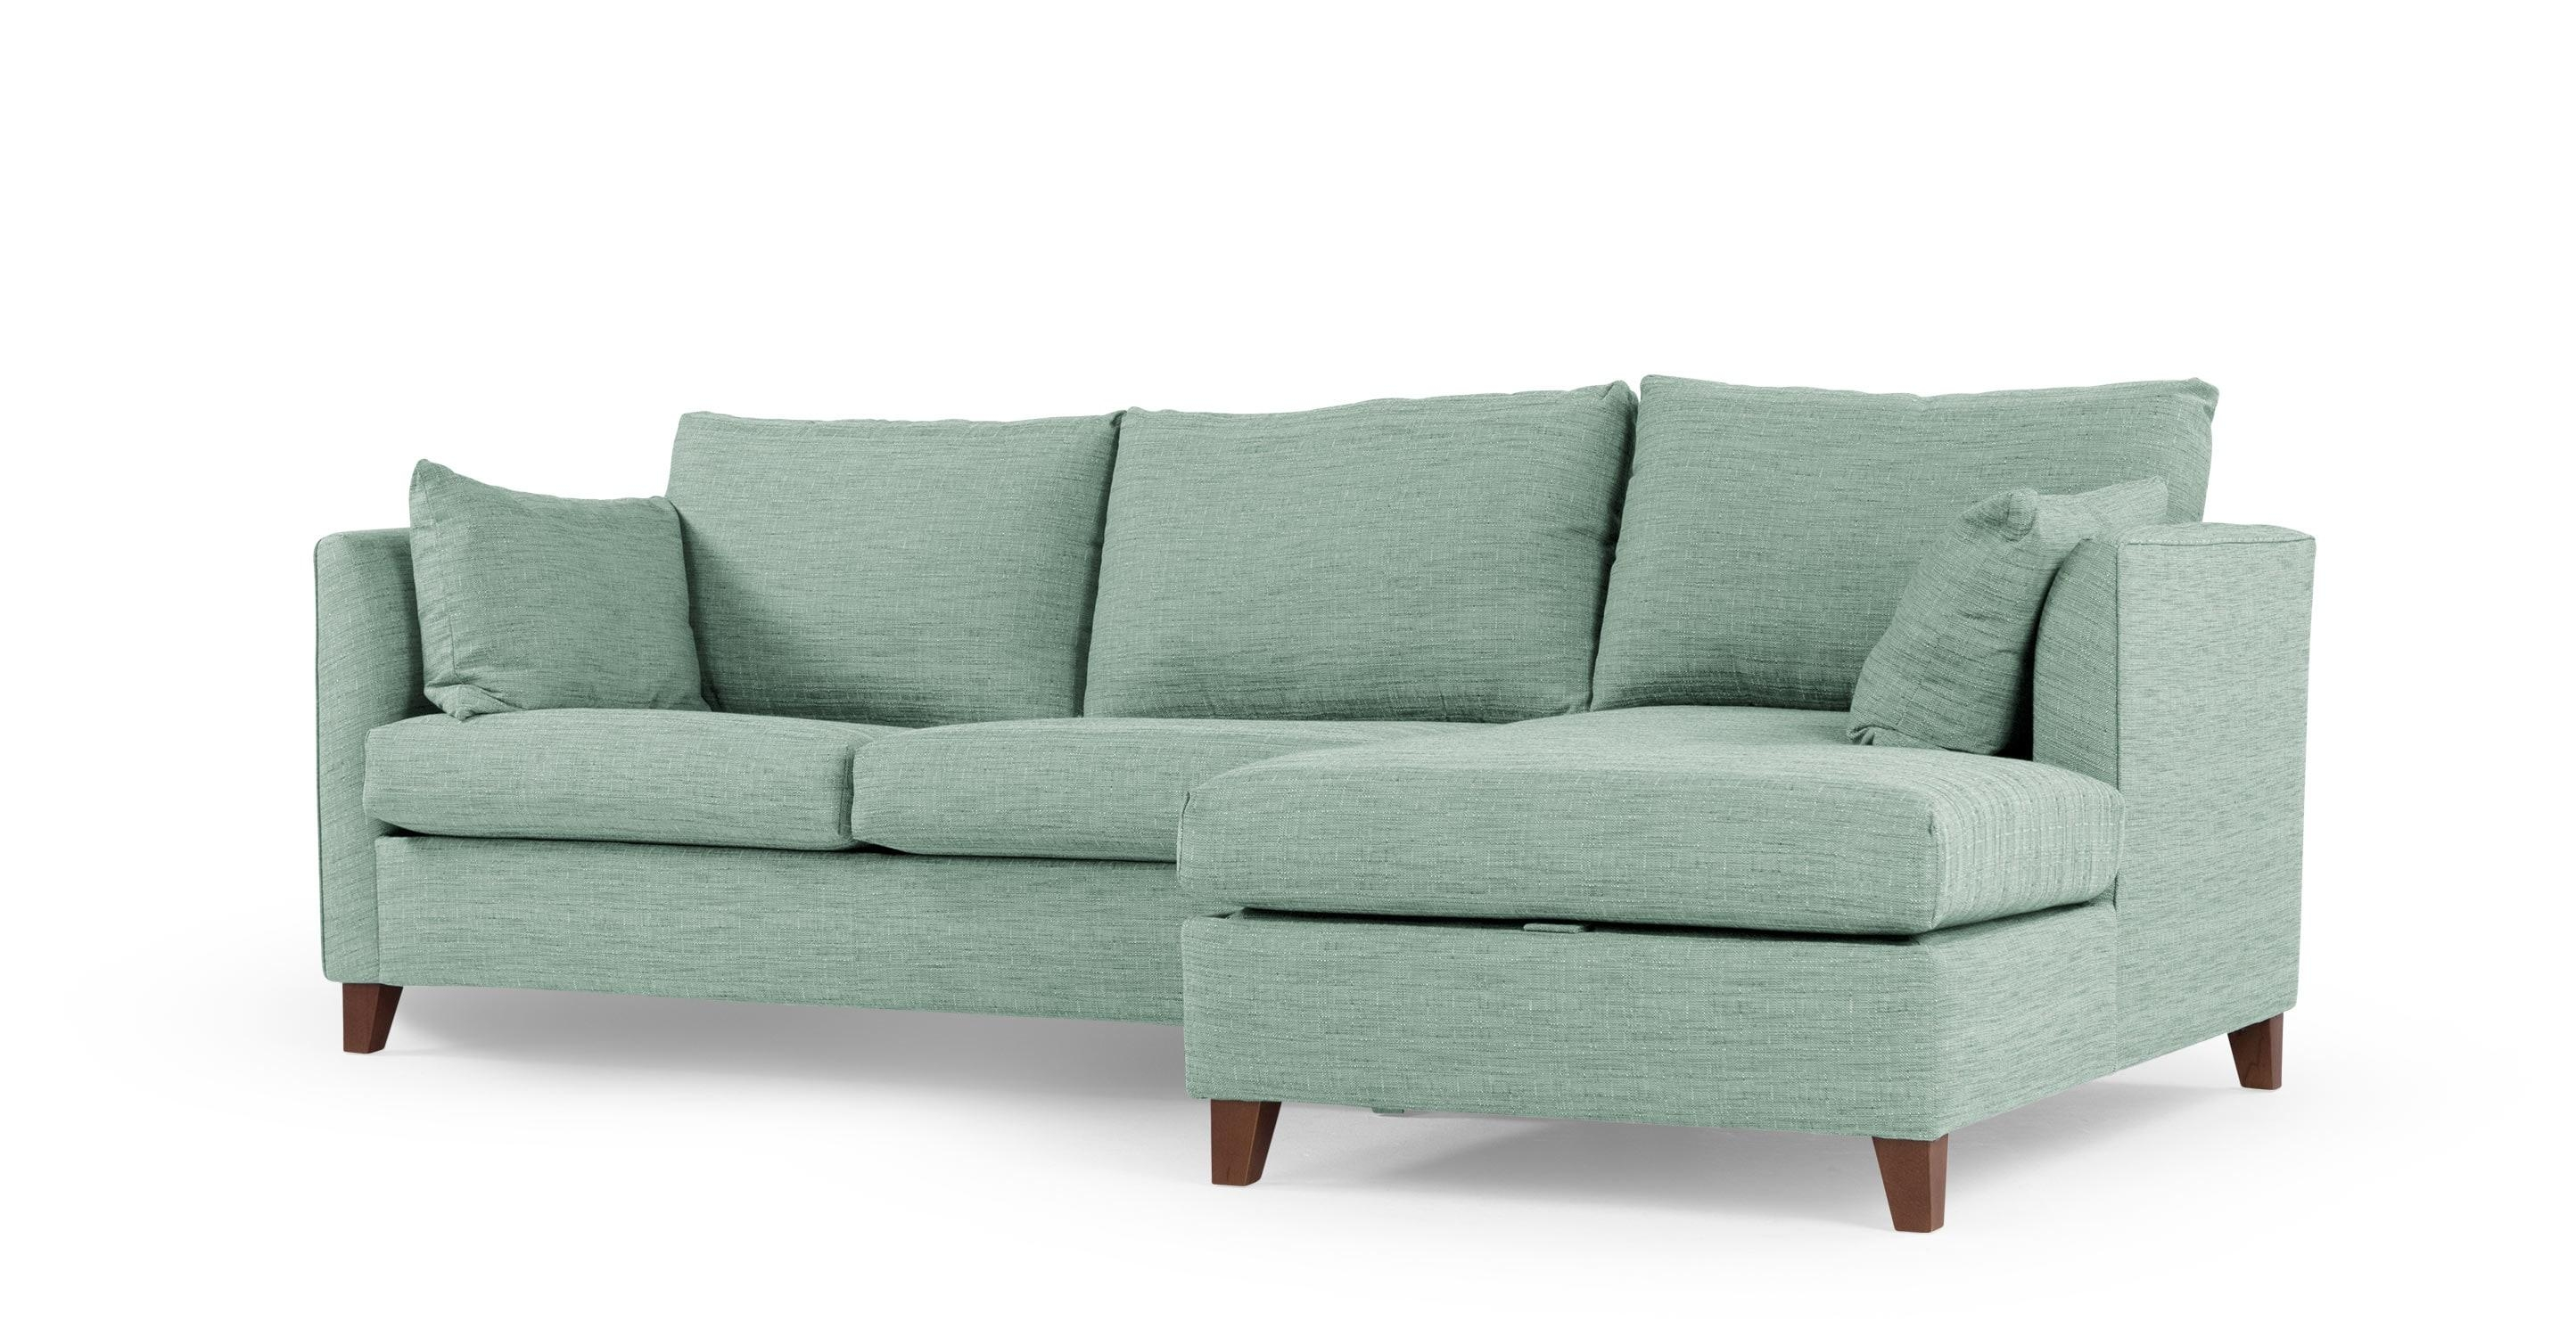 Bari Corner Storage Sofabed, Right Hand Facing, Malva Aqua | Made Intended For Aqua Sofa Beds (Image 3 of 20)